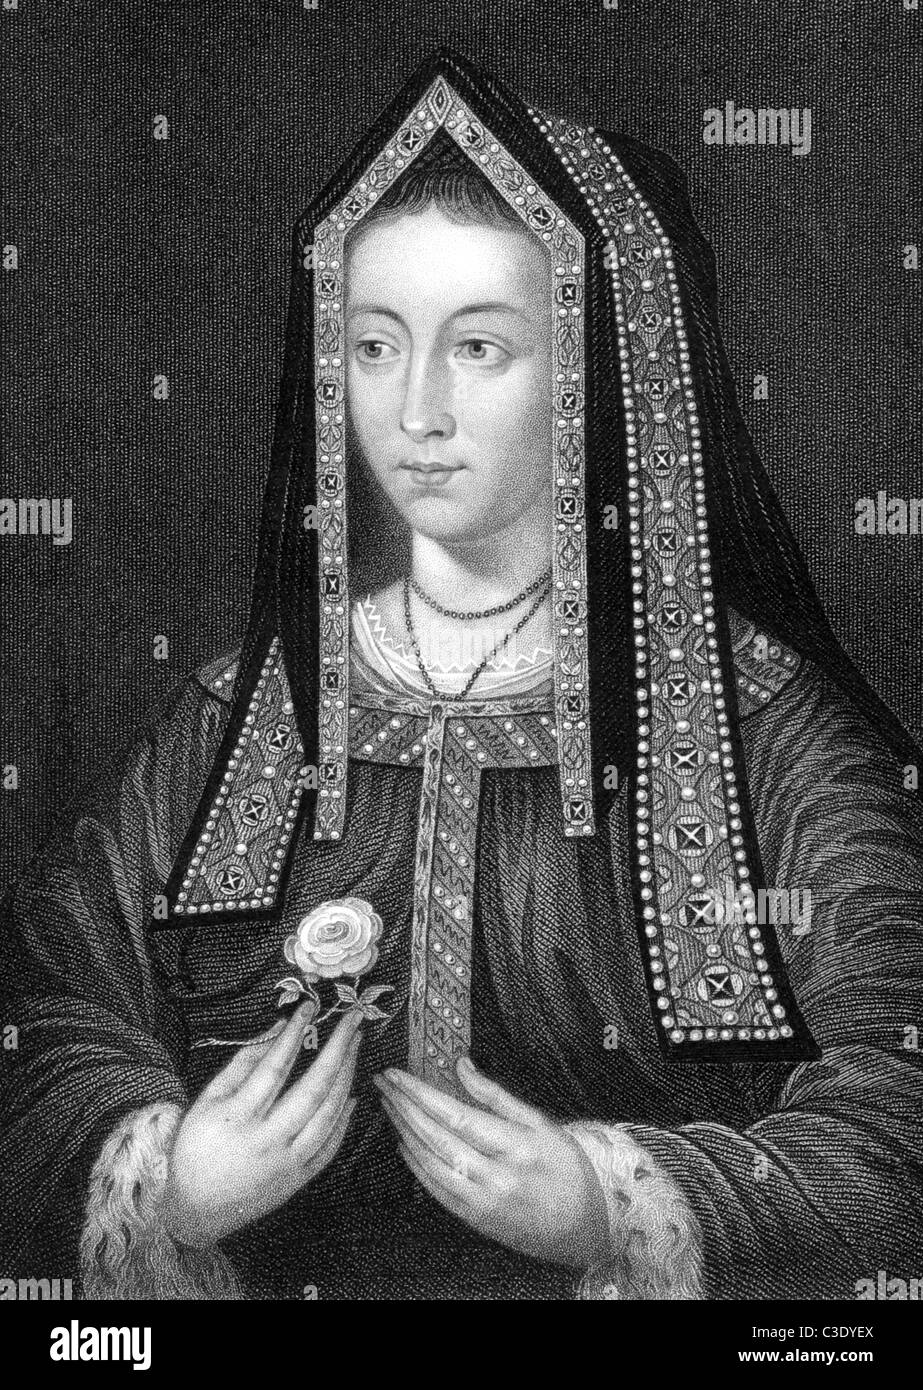 Elizabeth of York (1466-1503) on engraving from 1838. Queen consort of England as spouse of King Henry VII. Stock Photo